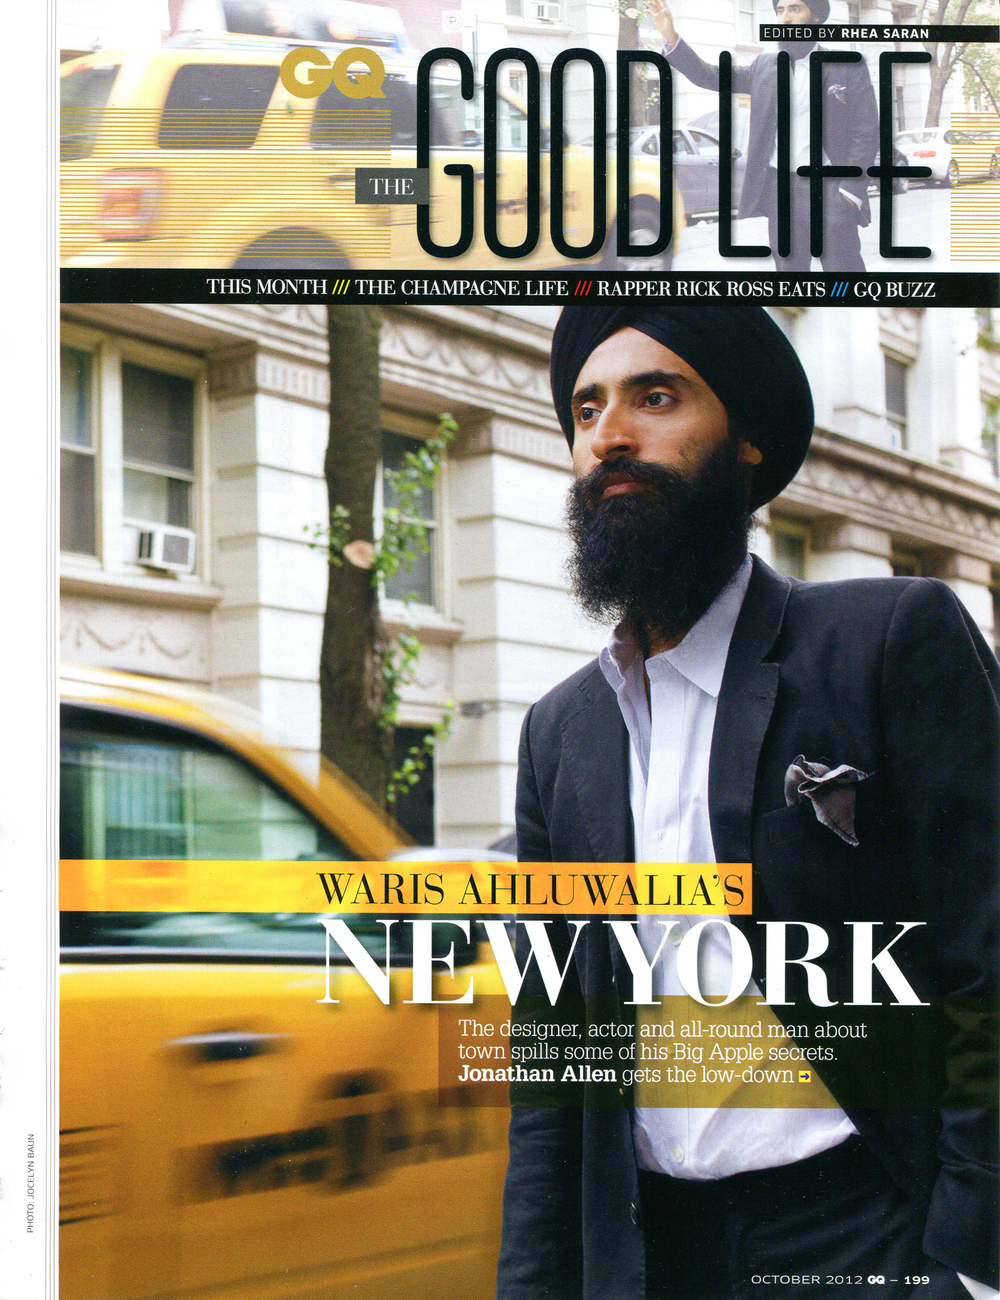 Waris Ahluwalia's New York